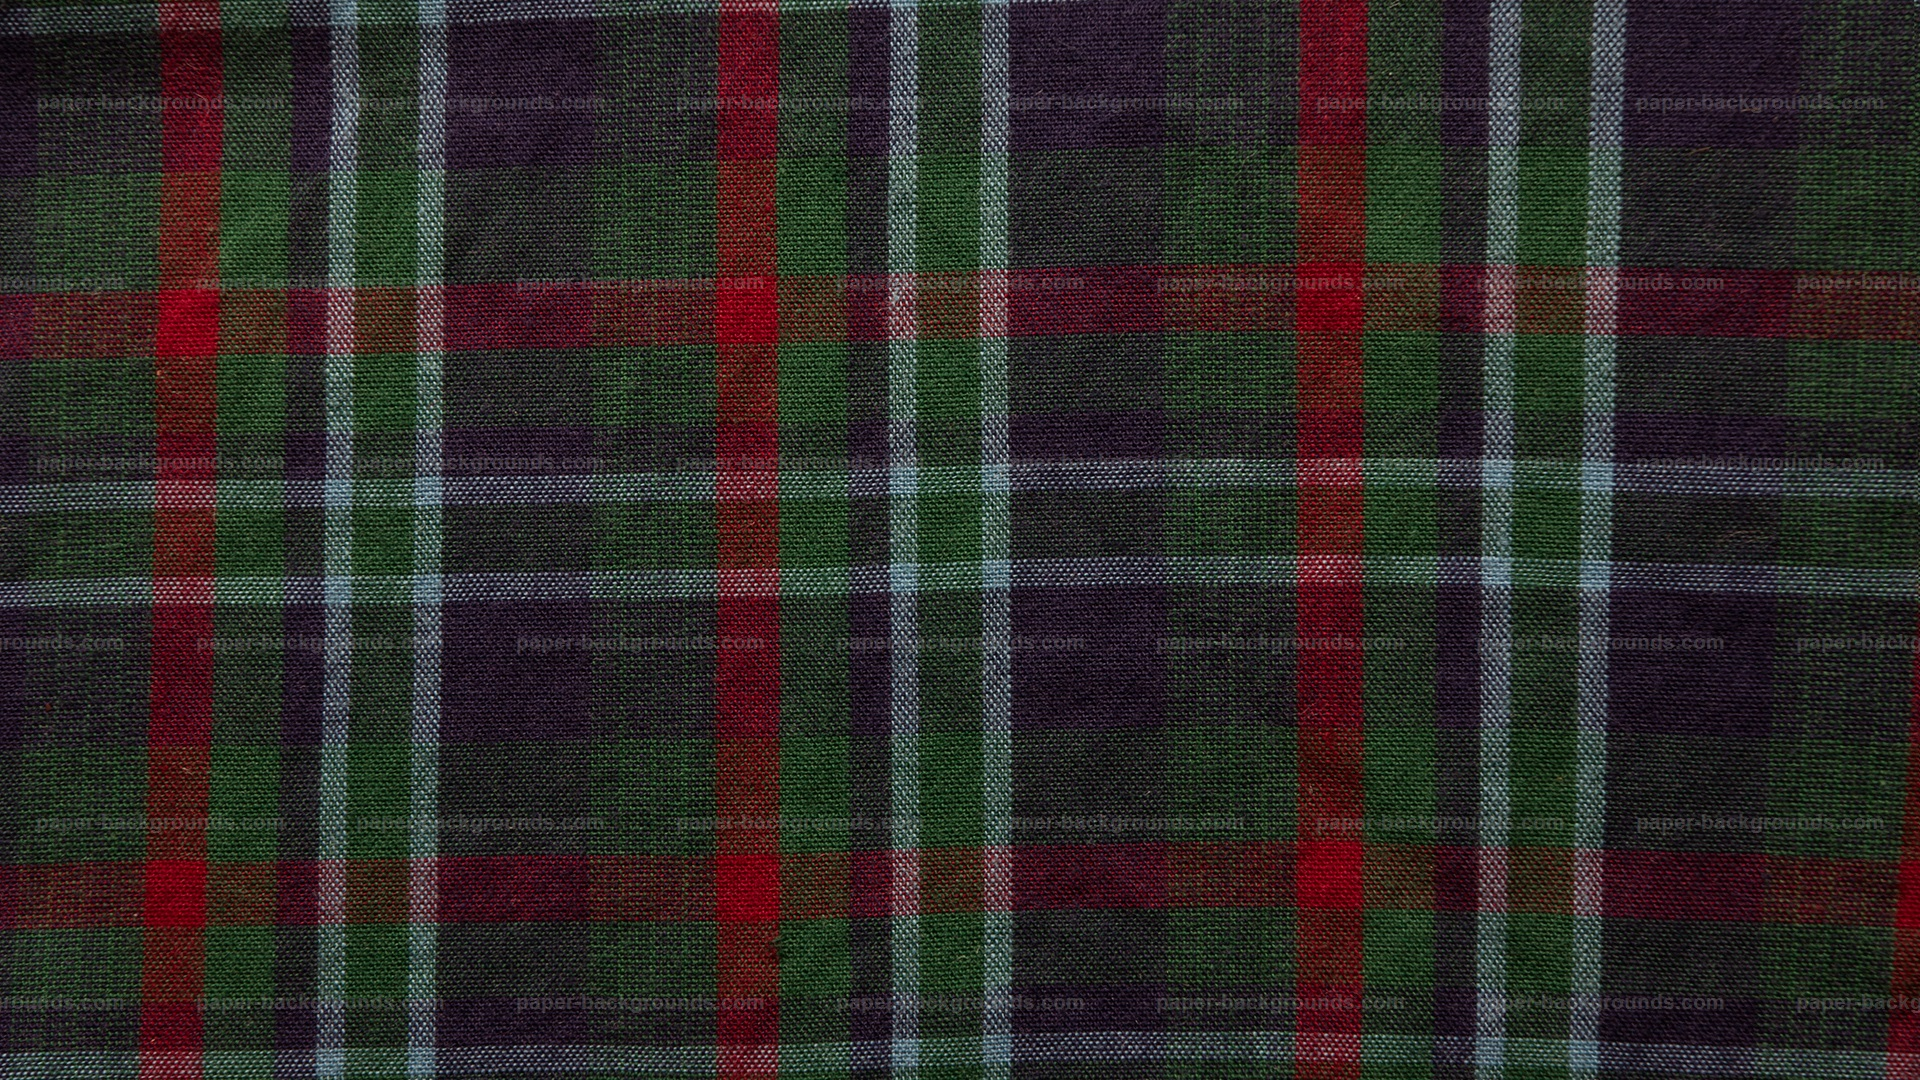 Dark Plaid Fabric Texture HD